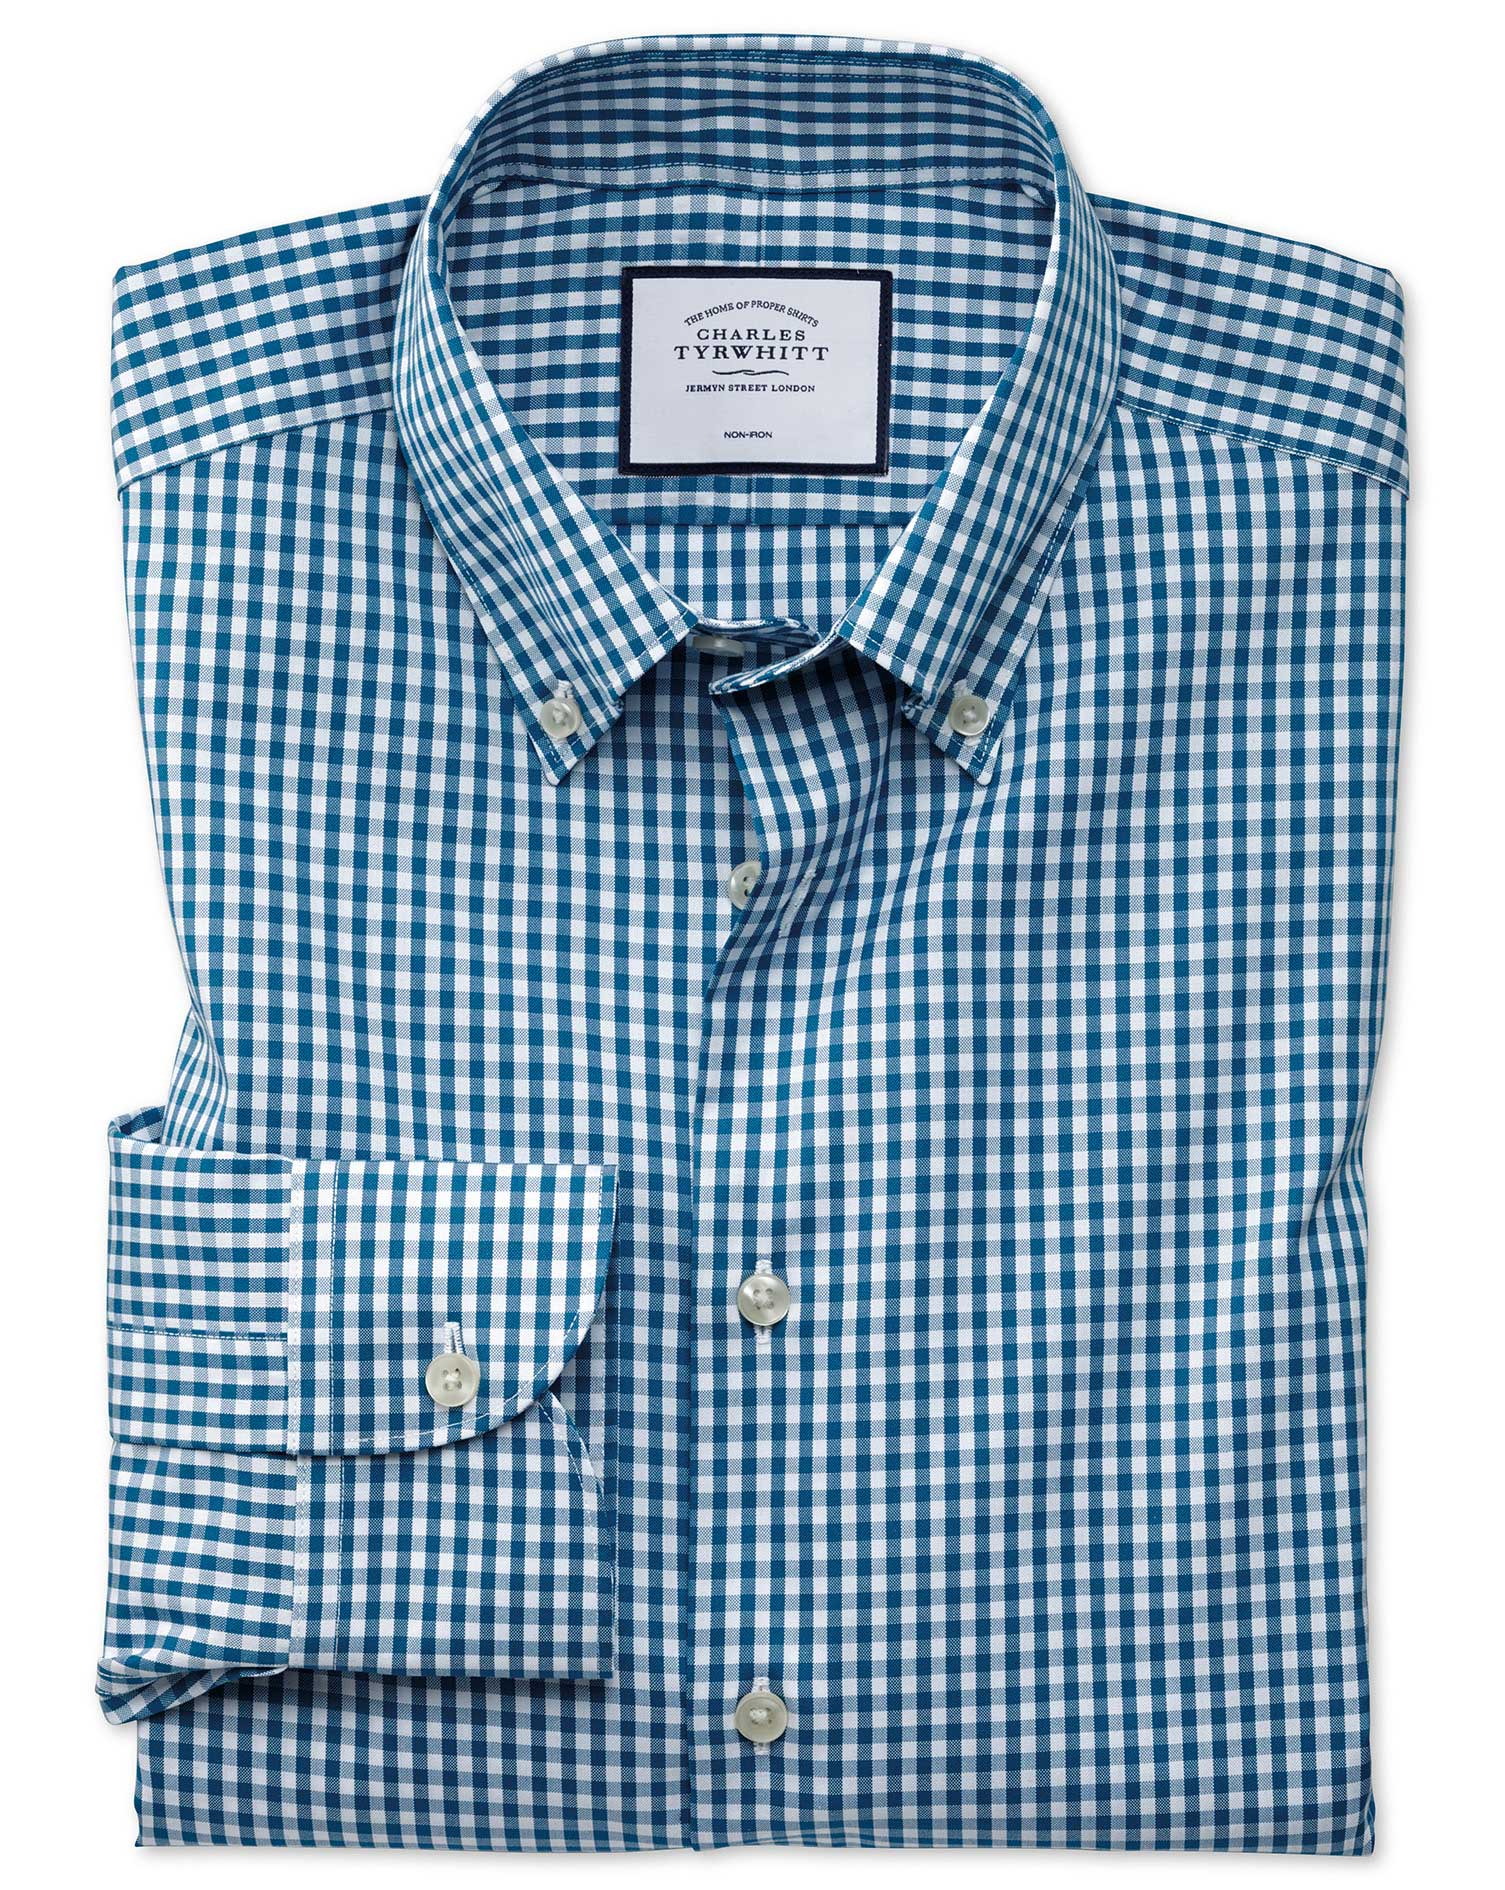 Slim Fit Business Casual Non-Iron Button-Down Teal Check Cotton Formal Shirt Single Cuff Size 16.5/3